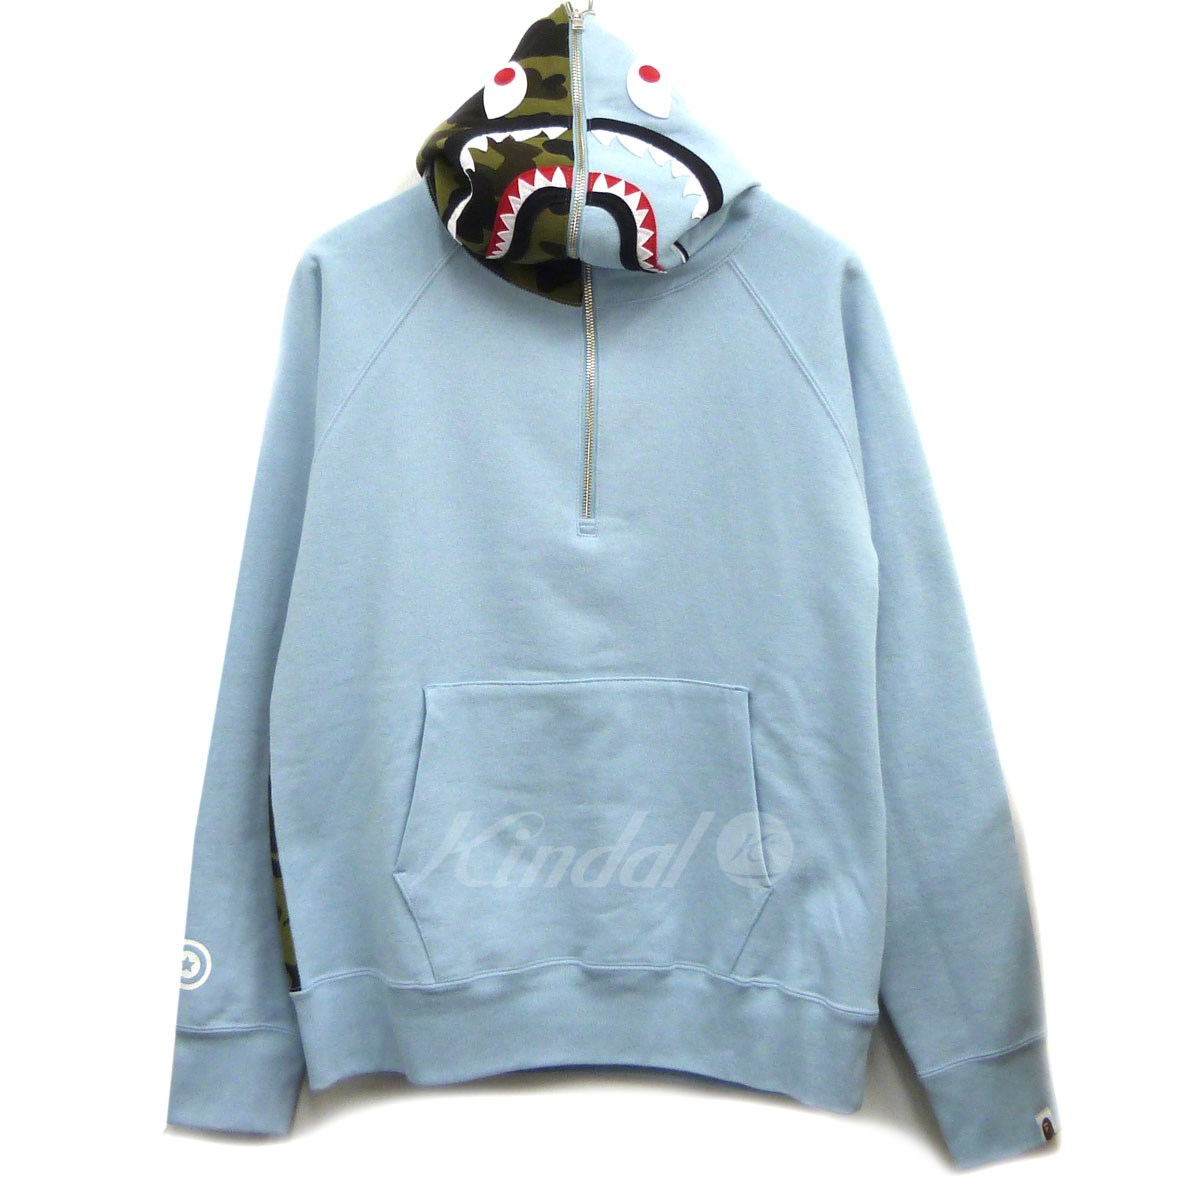 【中古】A BATHING APE 18AW「SHARK WIDE HALF ZIP PILLOVER HOODIE」シャークパーカー 【送料無料】 【142531】 【KIND1550】